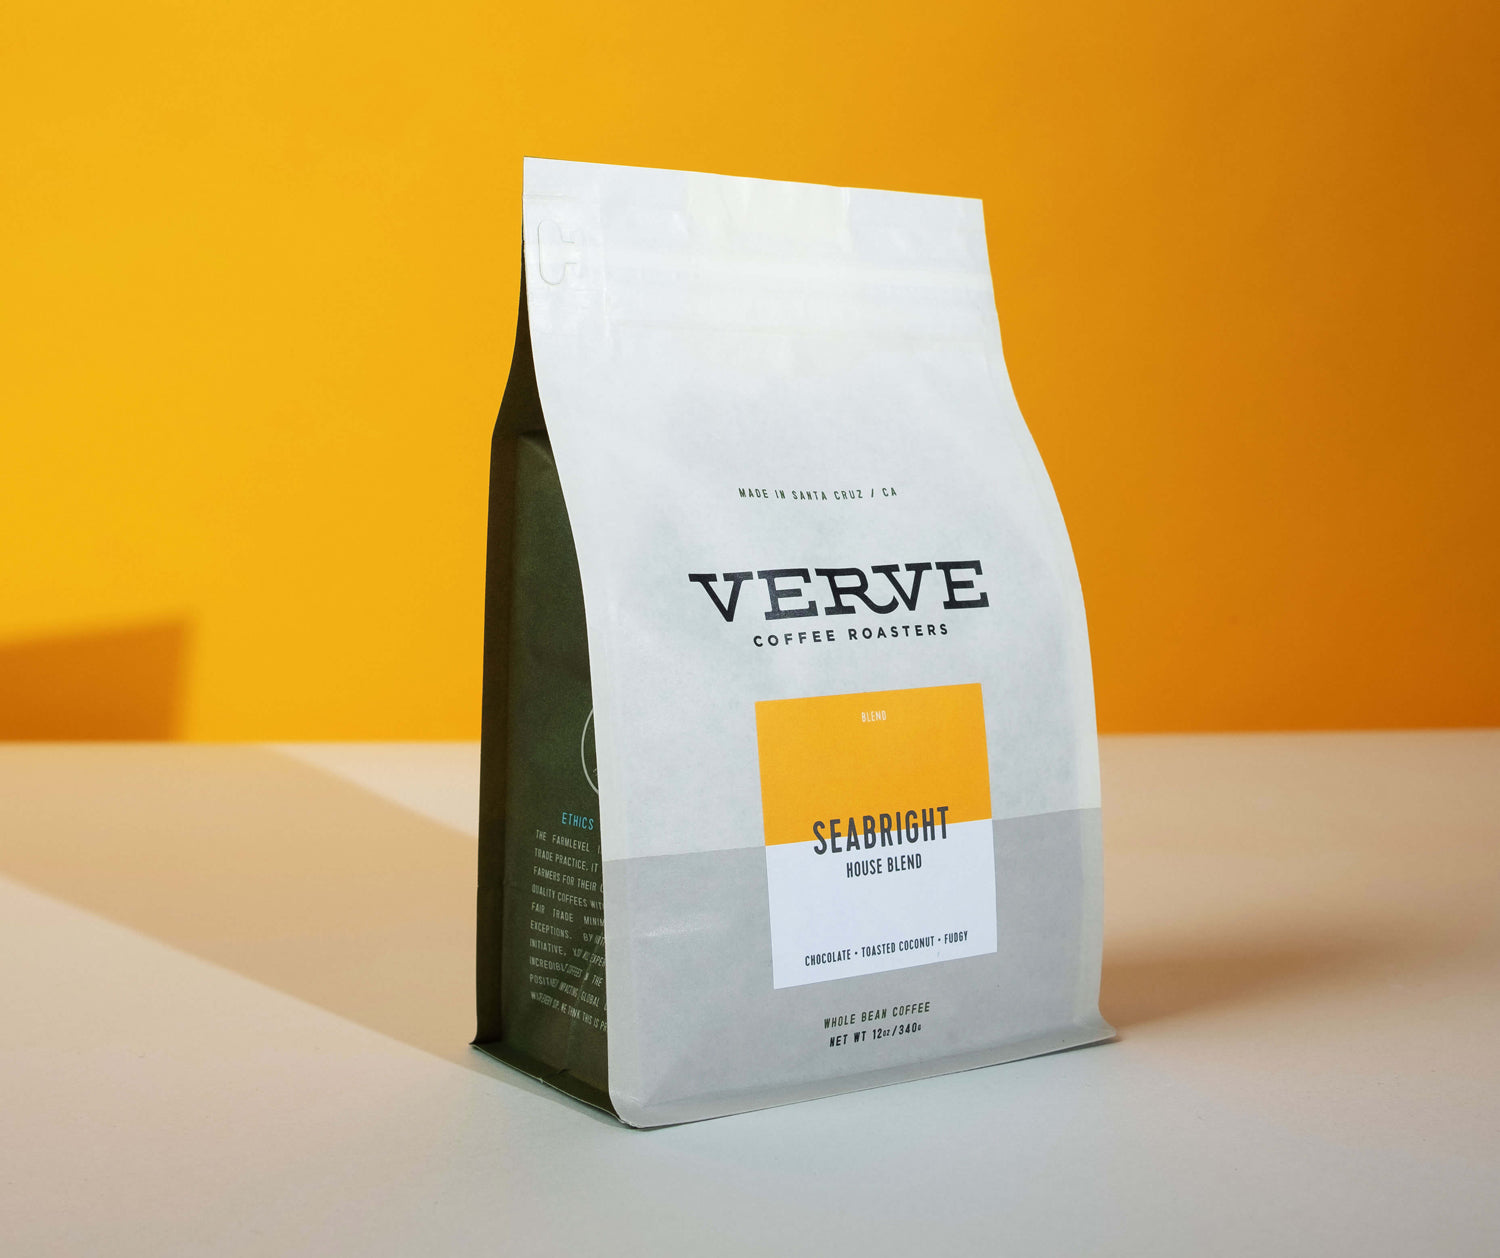 Verve Coffee Roasters Seabright House Blend